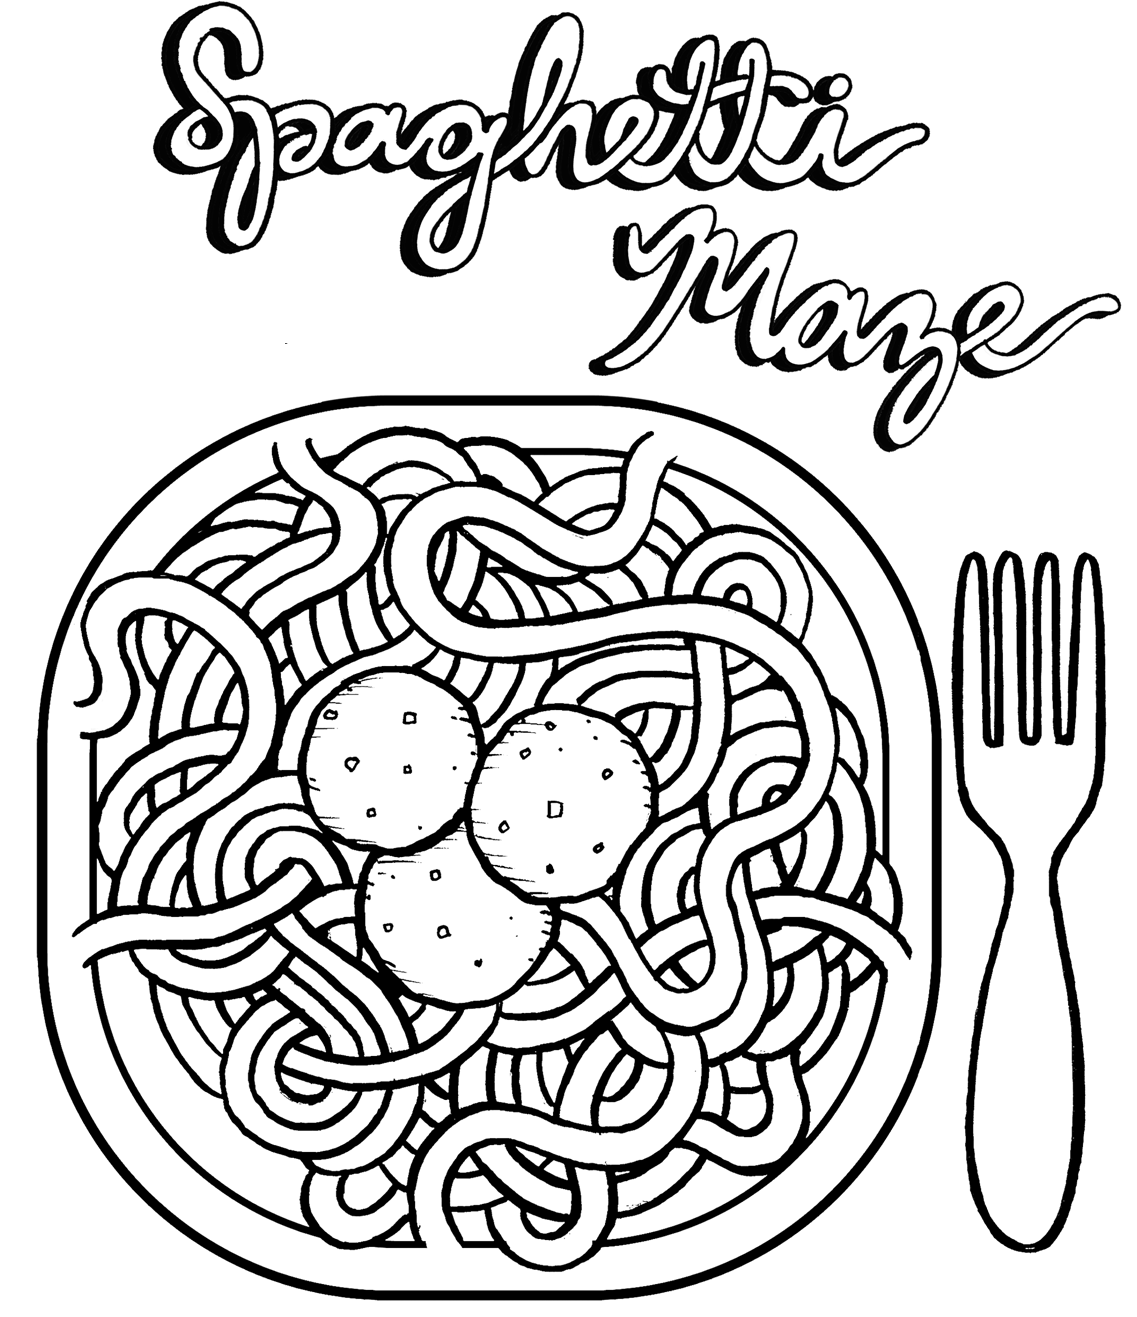 Spaghetti and Meatballs Coloring Sheet Poster